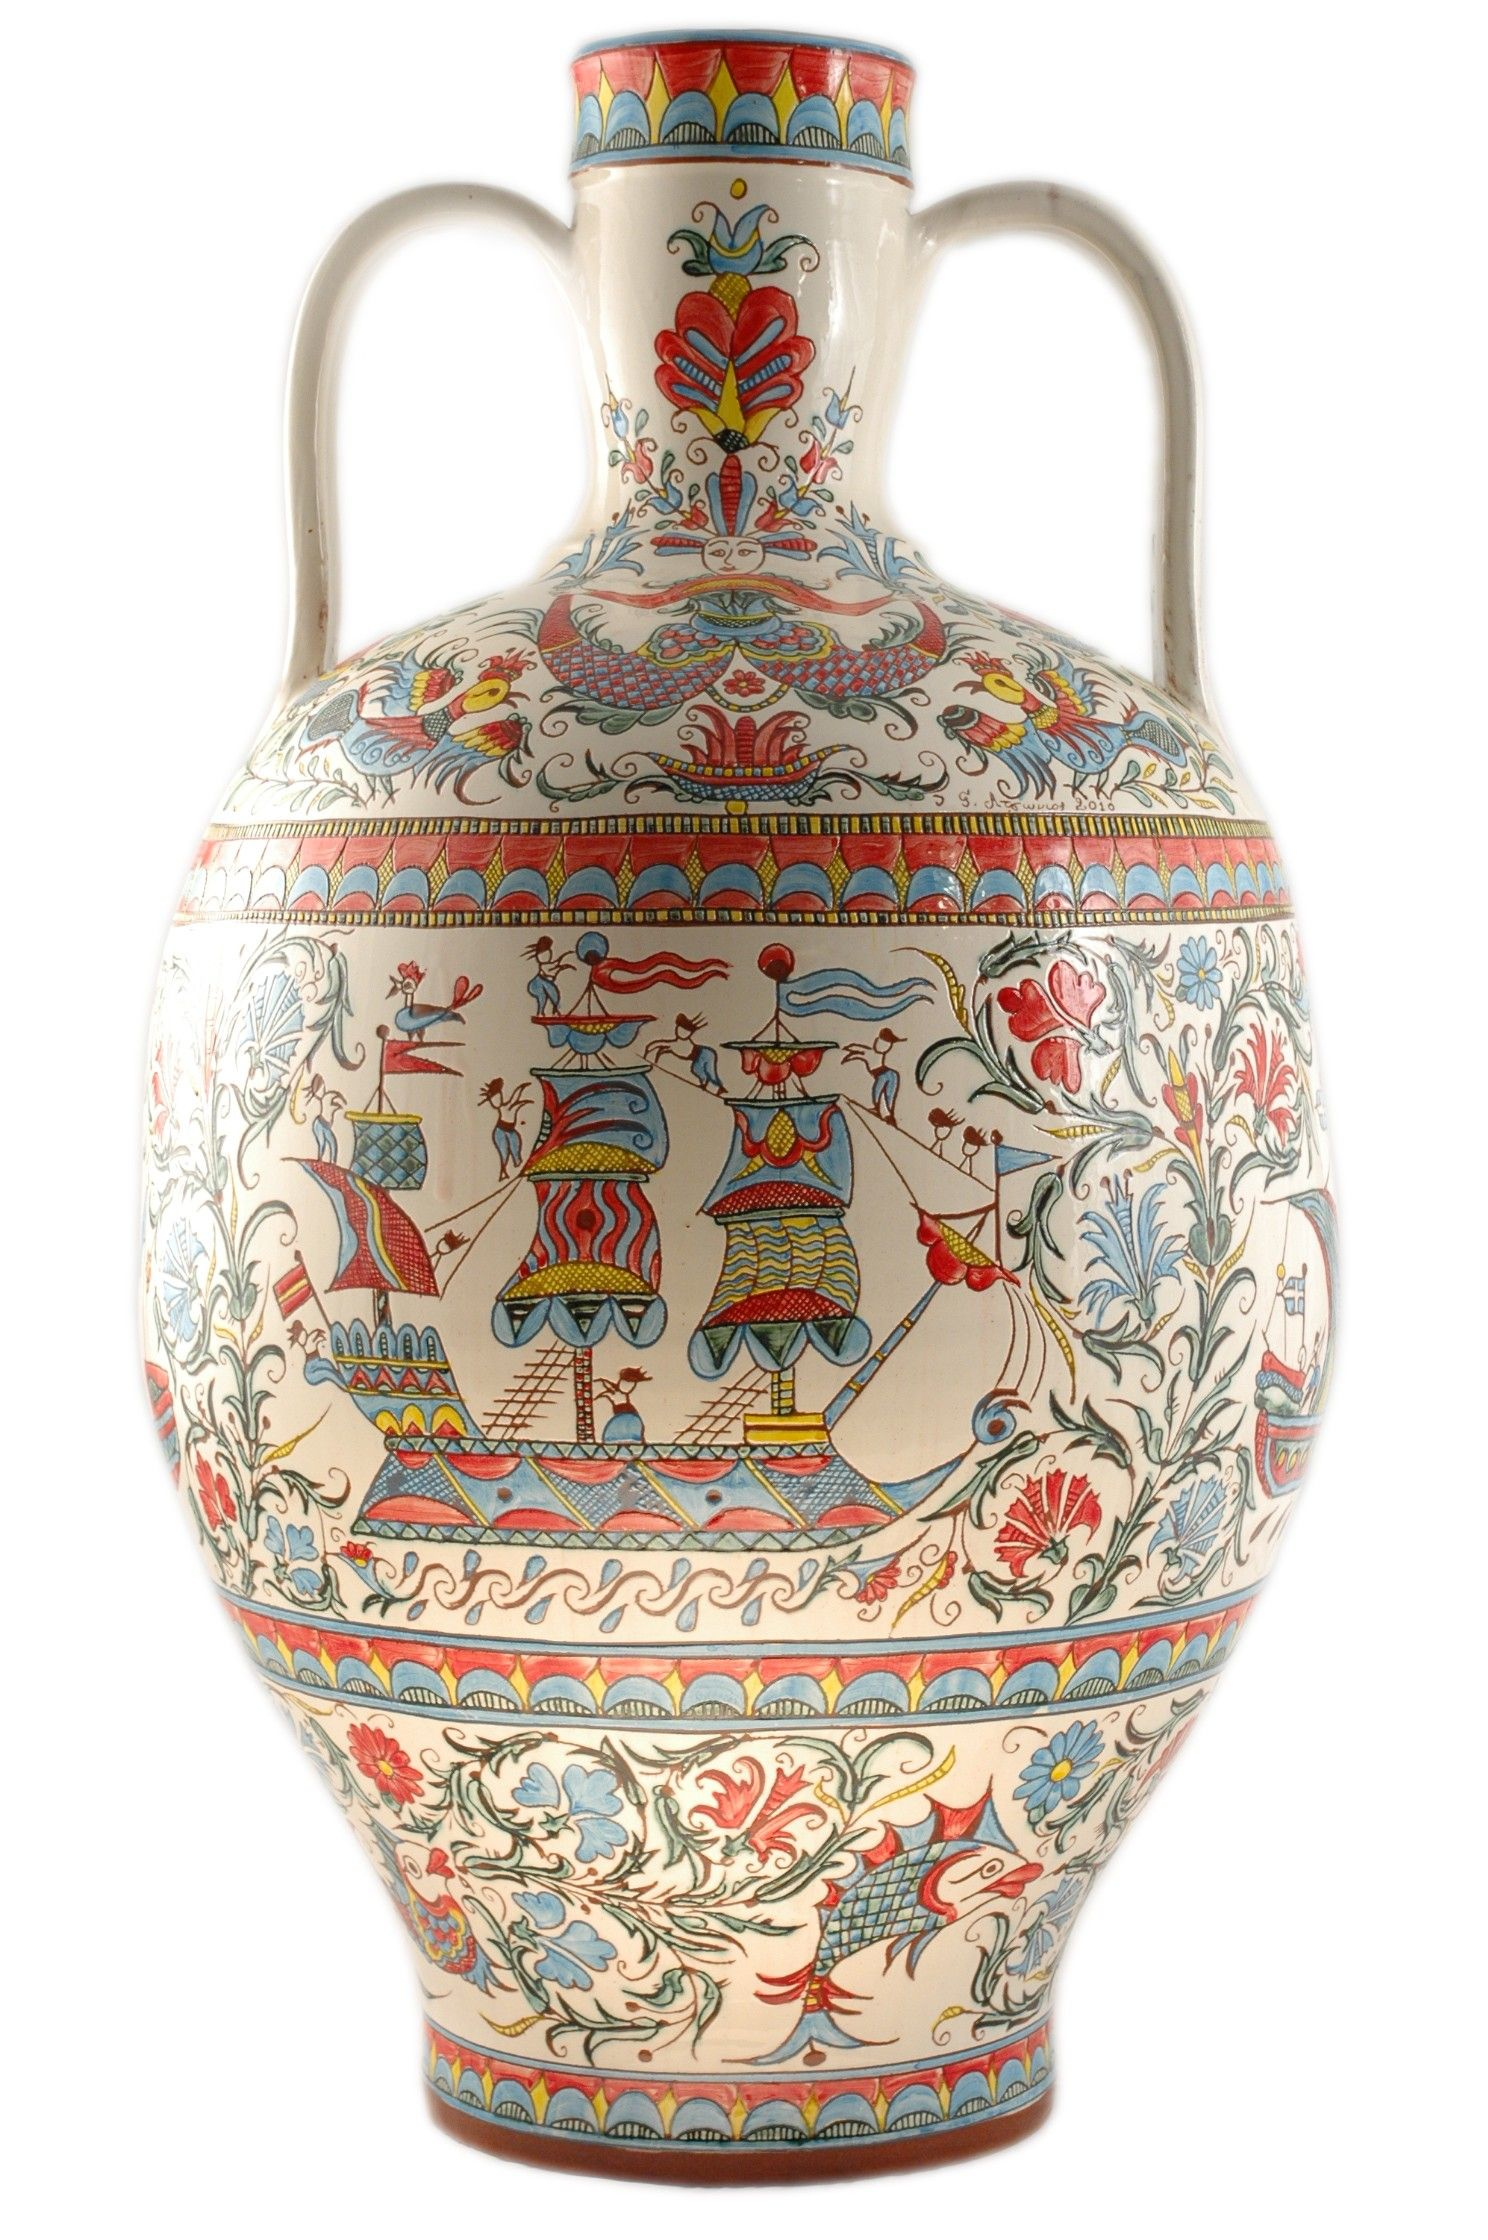 Hand-carved and hand-painted traditional pottery jug (Stamna) with designs inspired by Greek tradition and folk art.